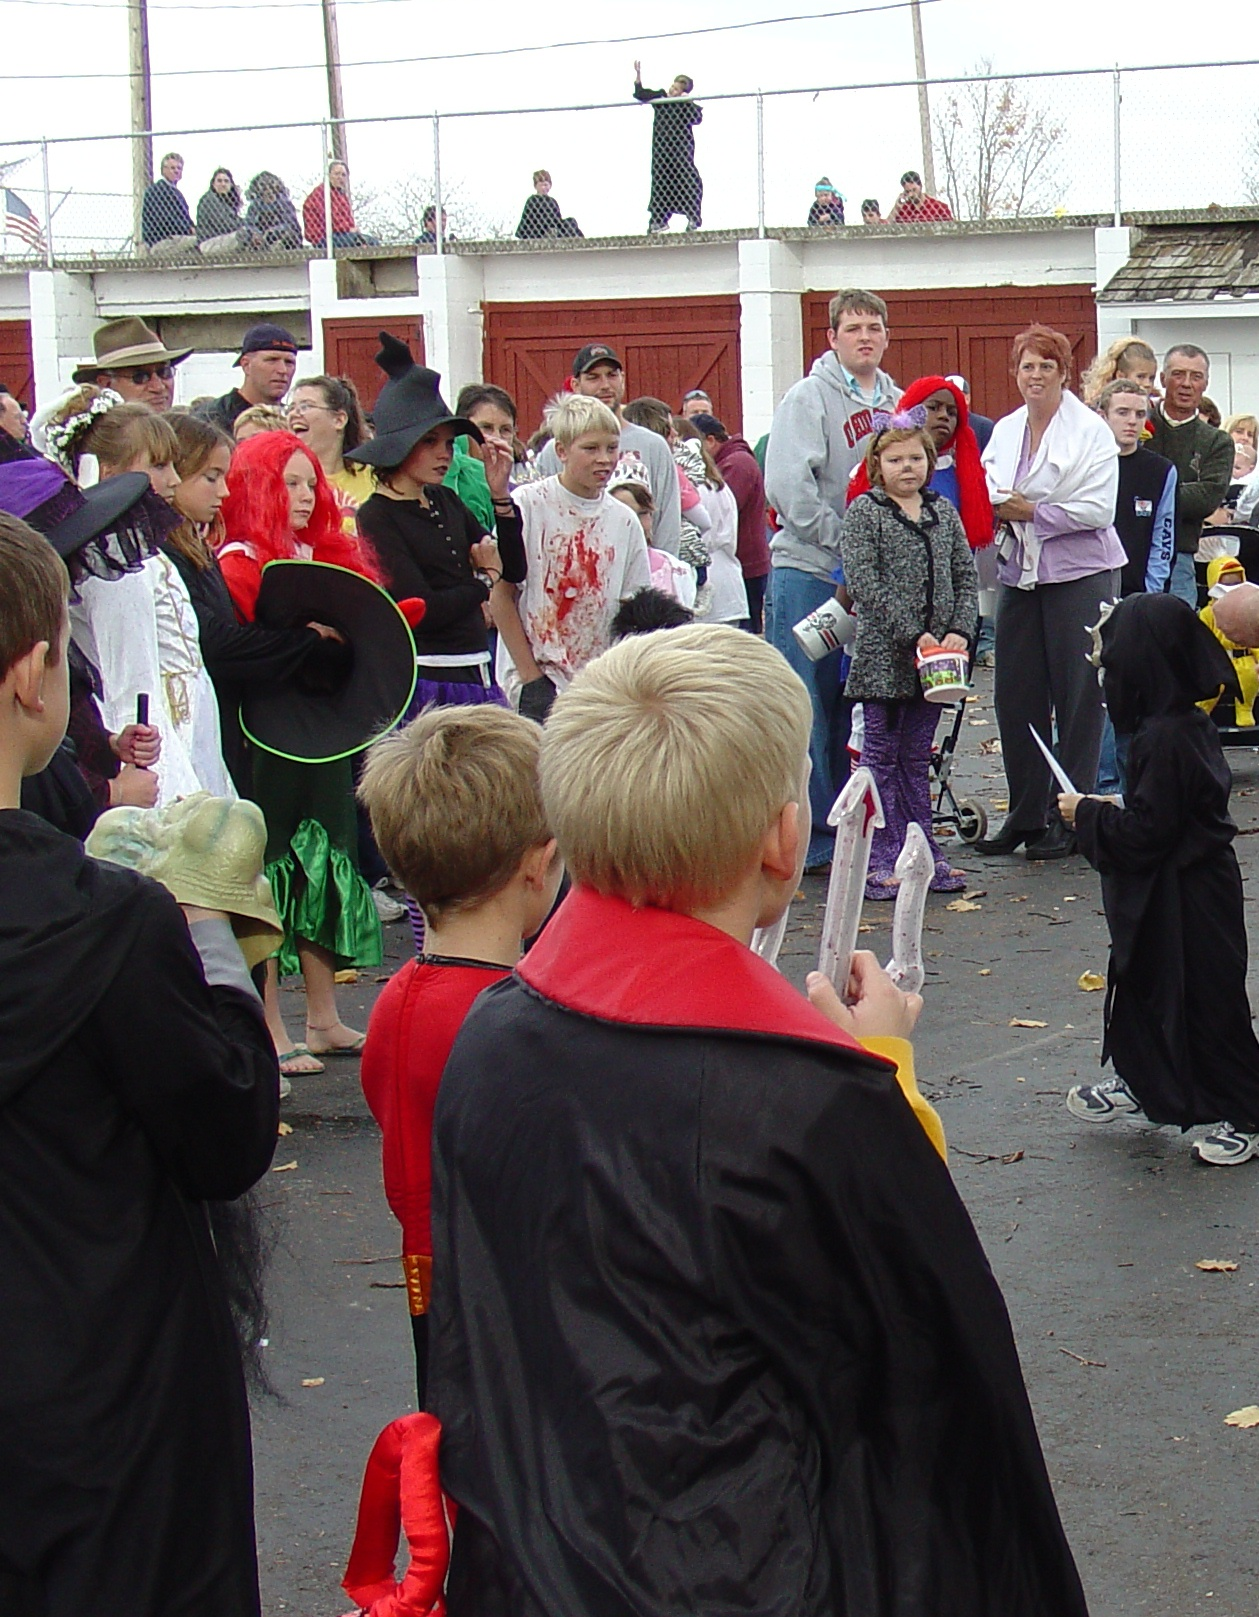 trick or treat parade from 2004 27